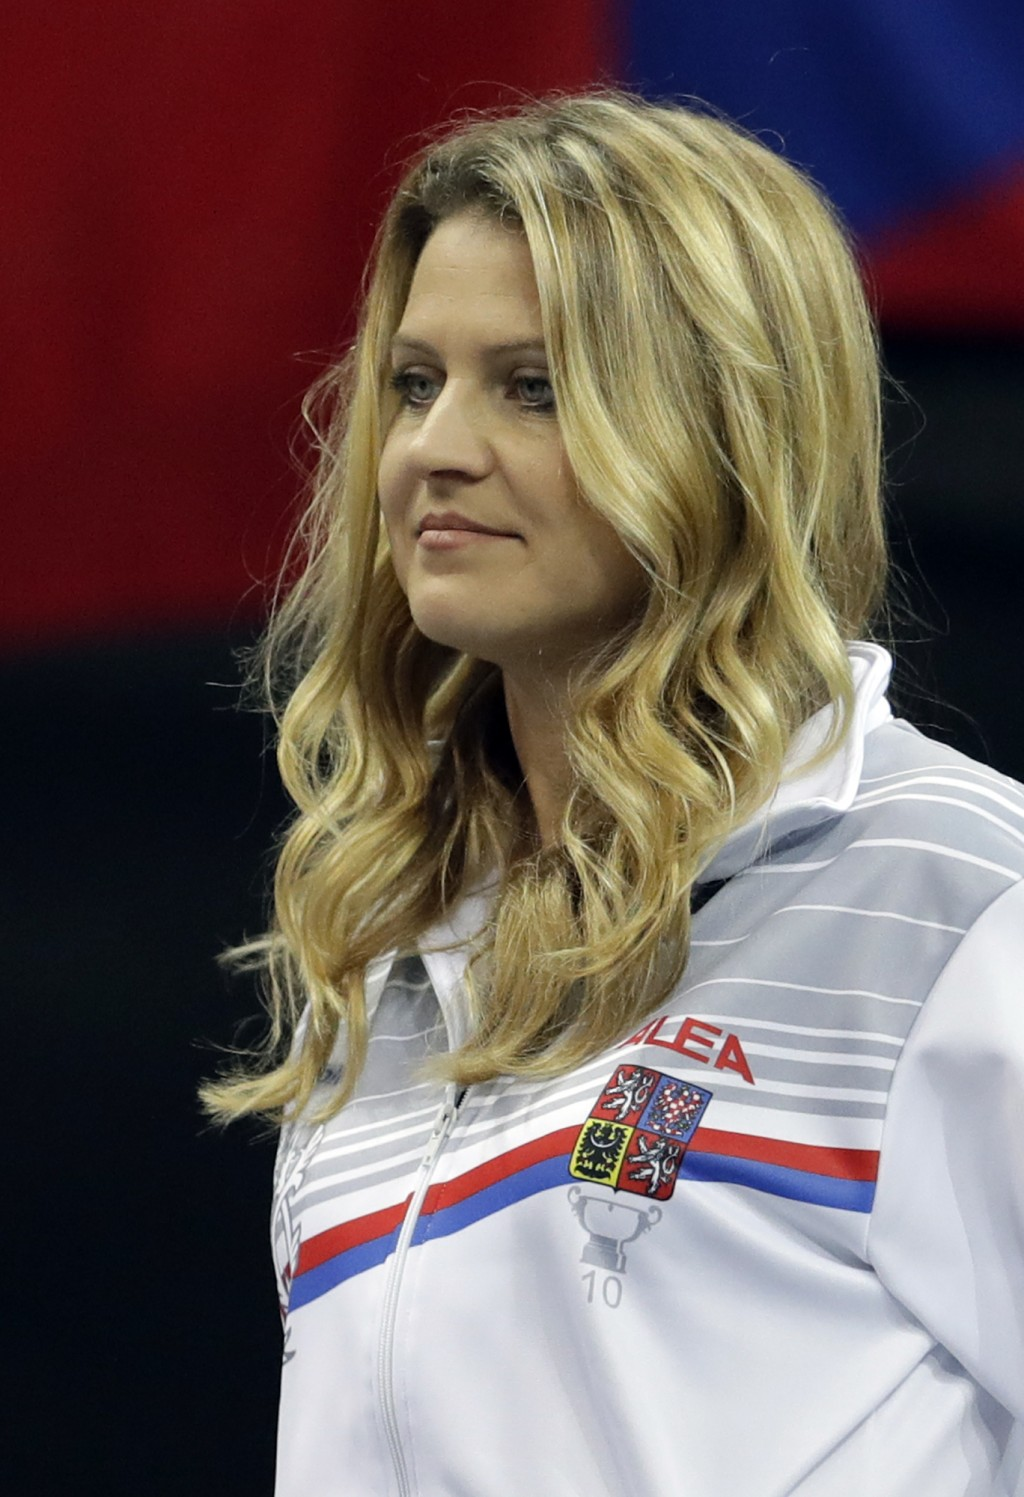 Tennis player Lucie Safarova of the Czech Republic watches a tennis match of the Fed Cup Final between Czech Republic and United States in Prague, Cze